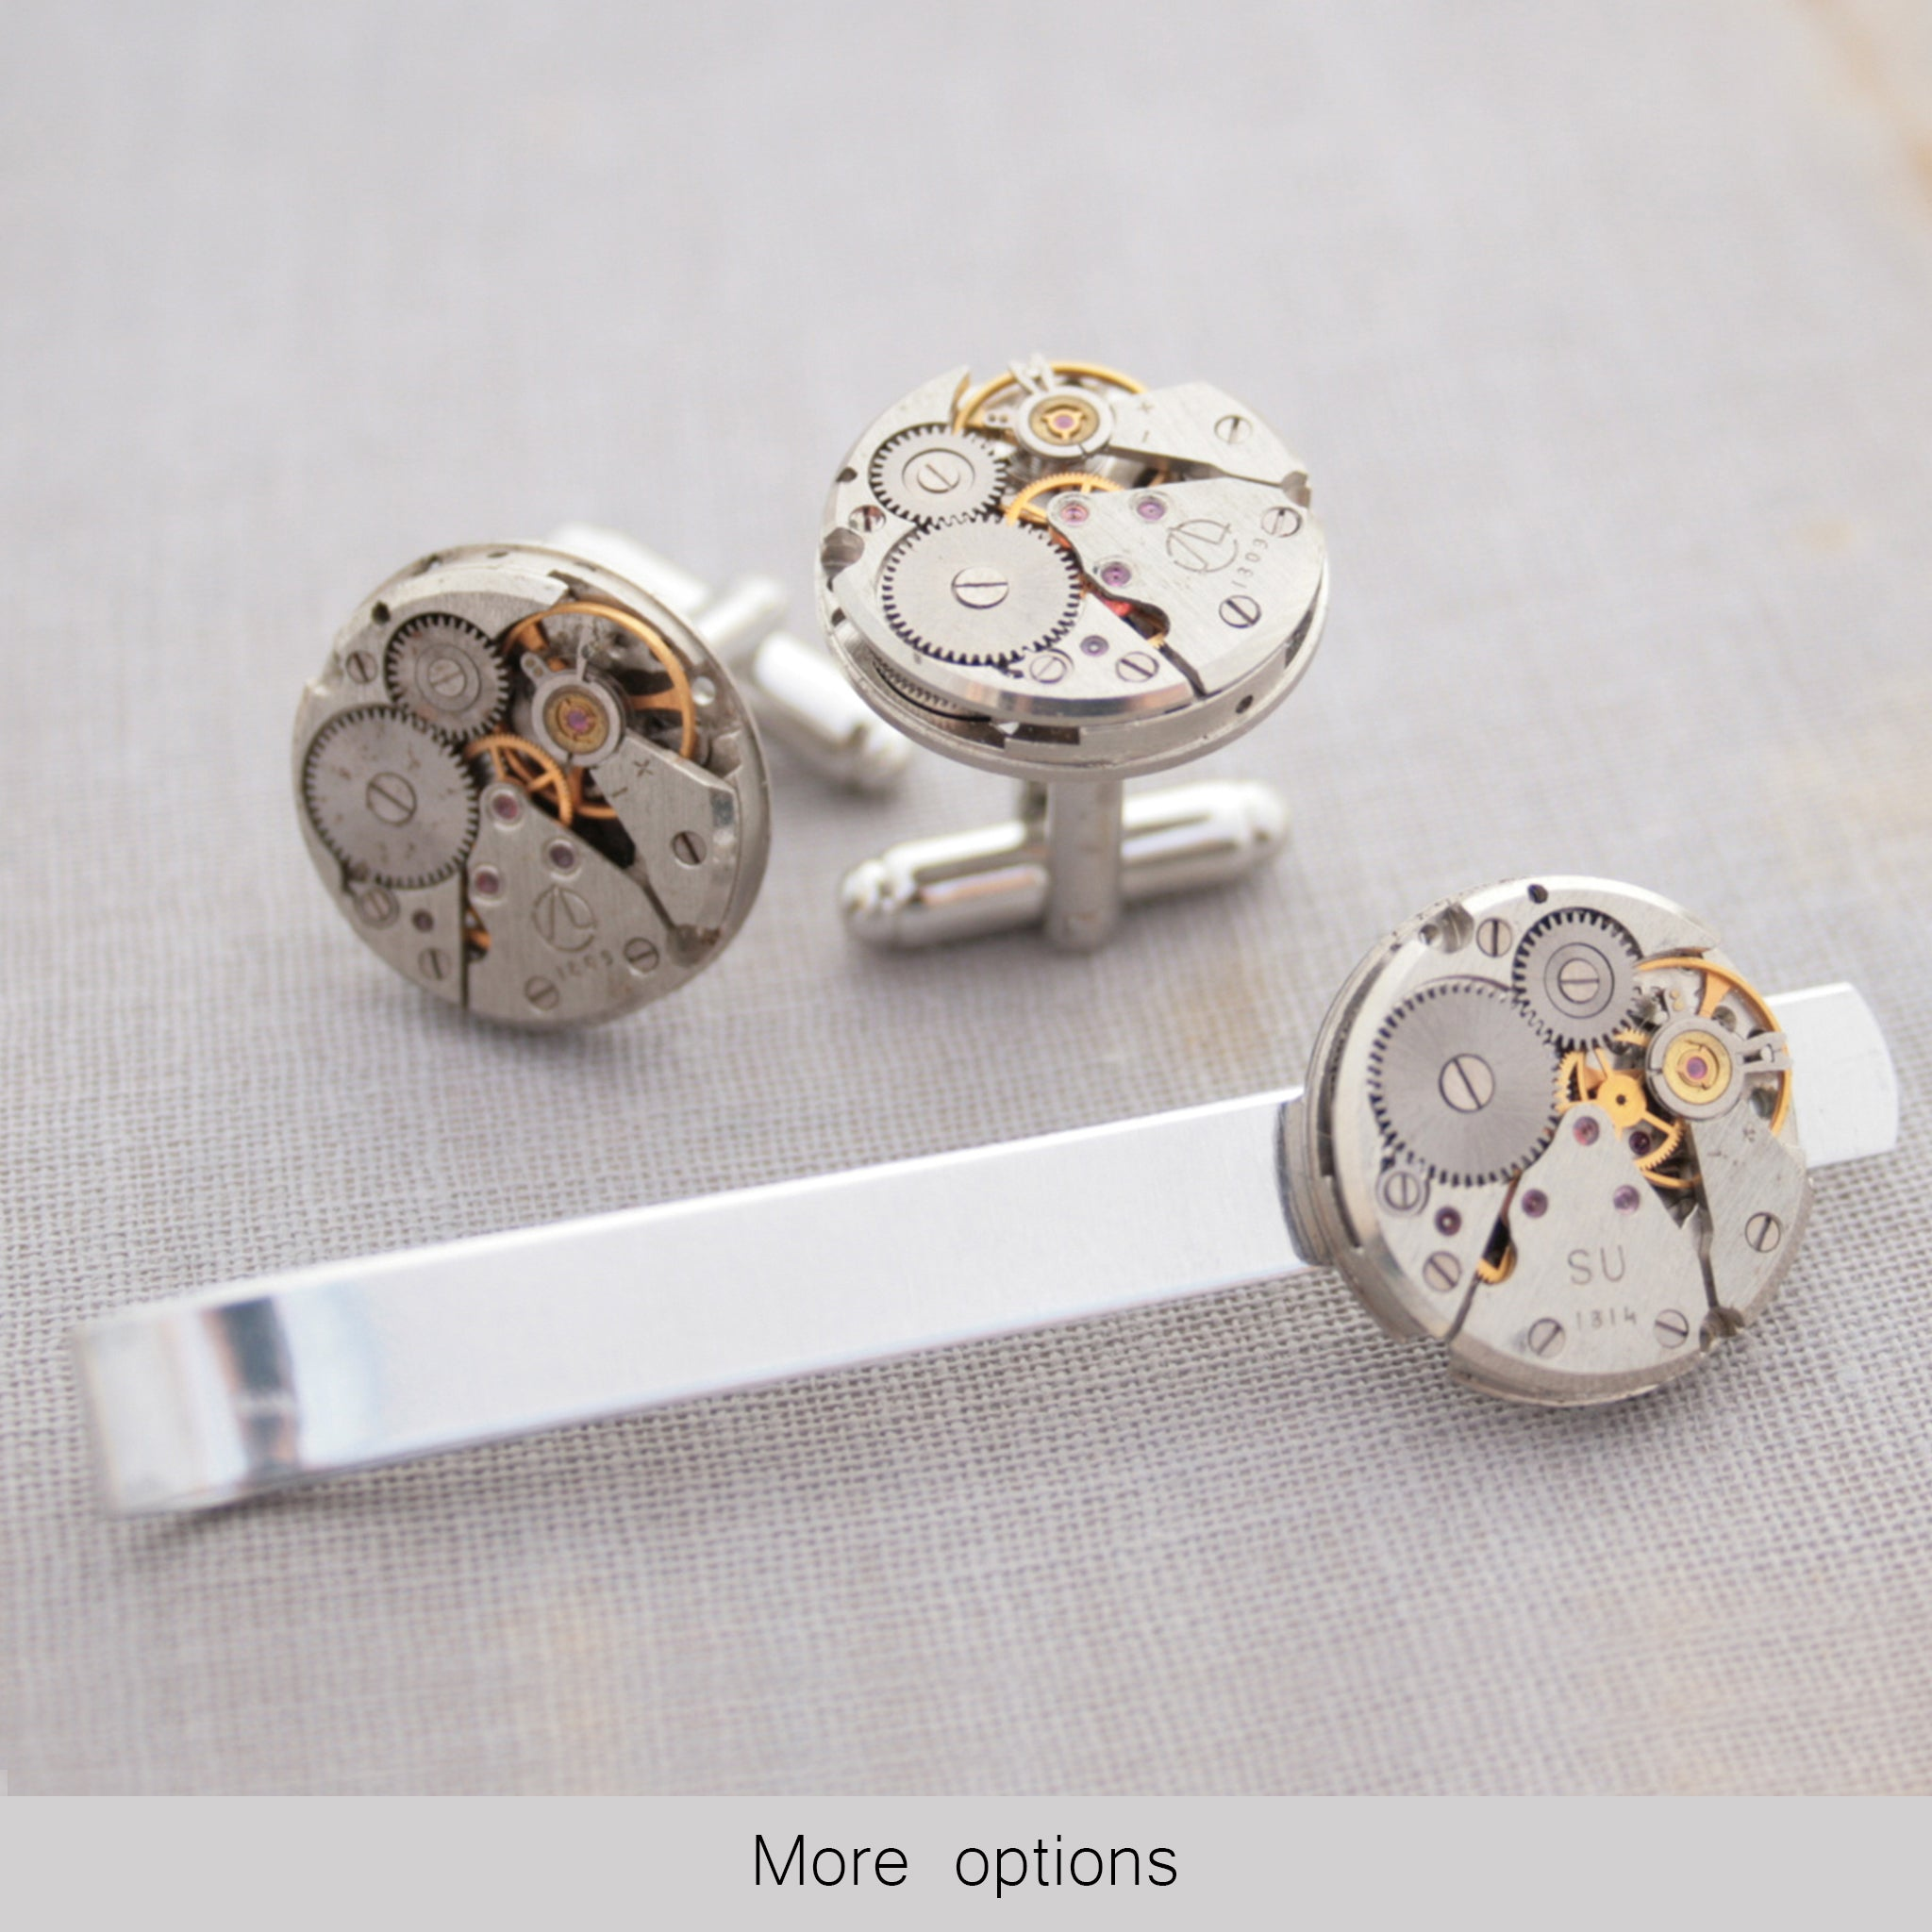 Steampunk Watch Movement Tie Clip and Cufflinks Set